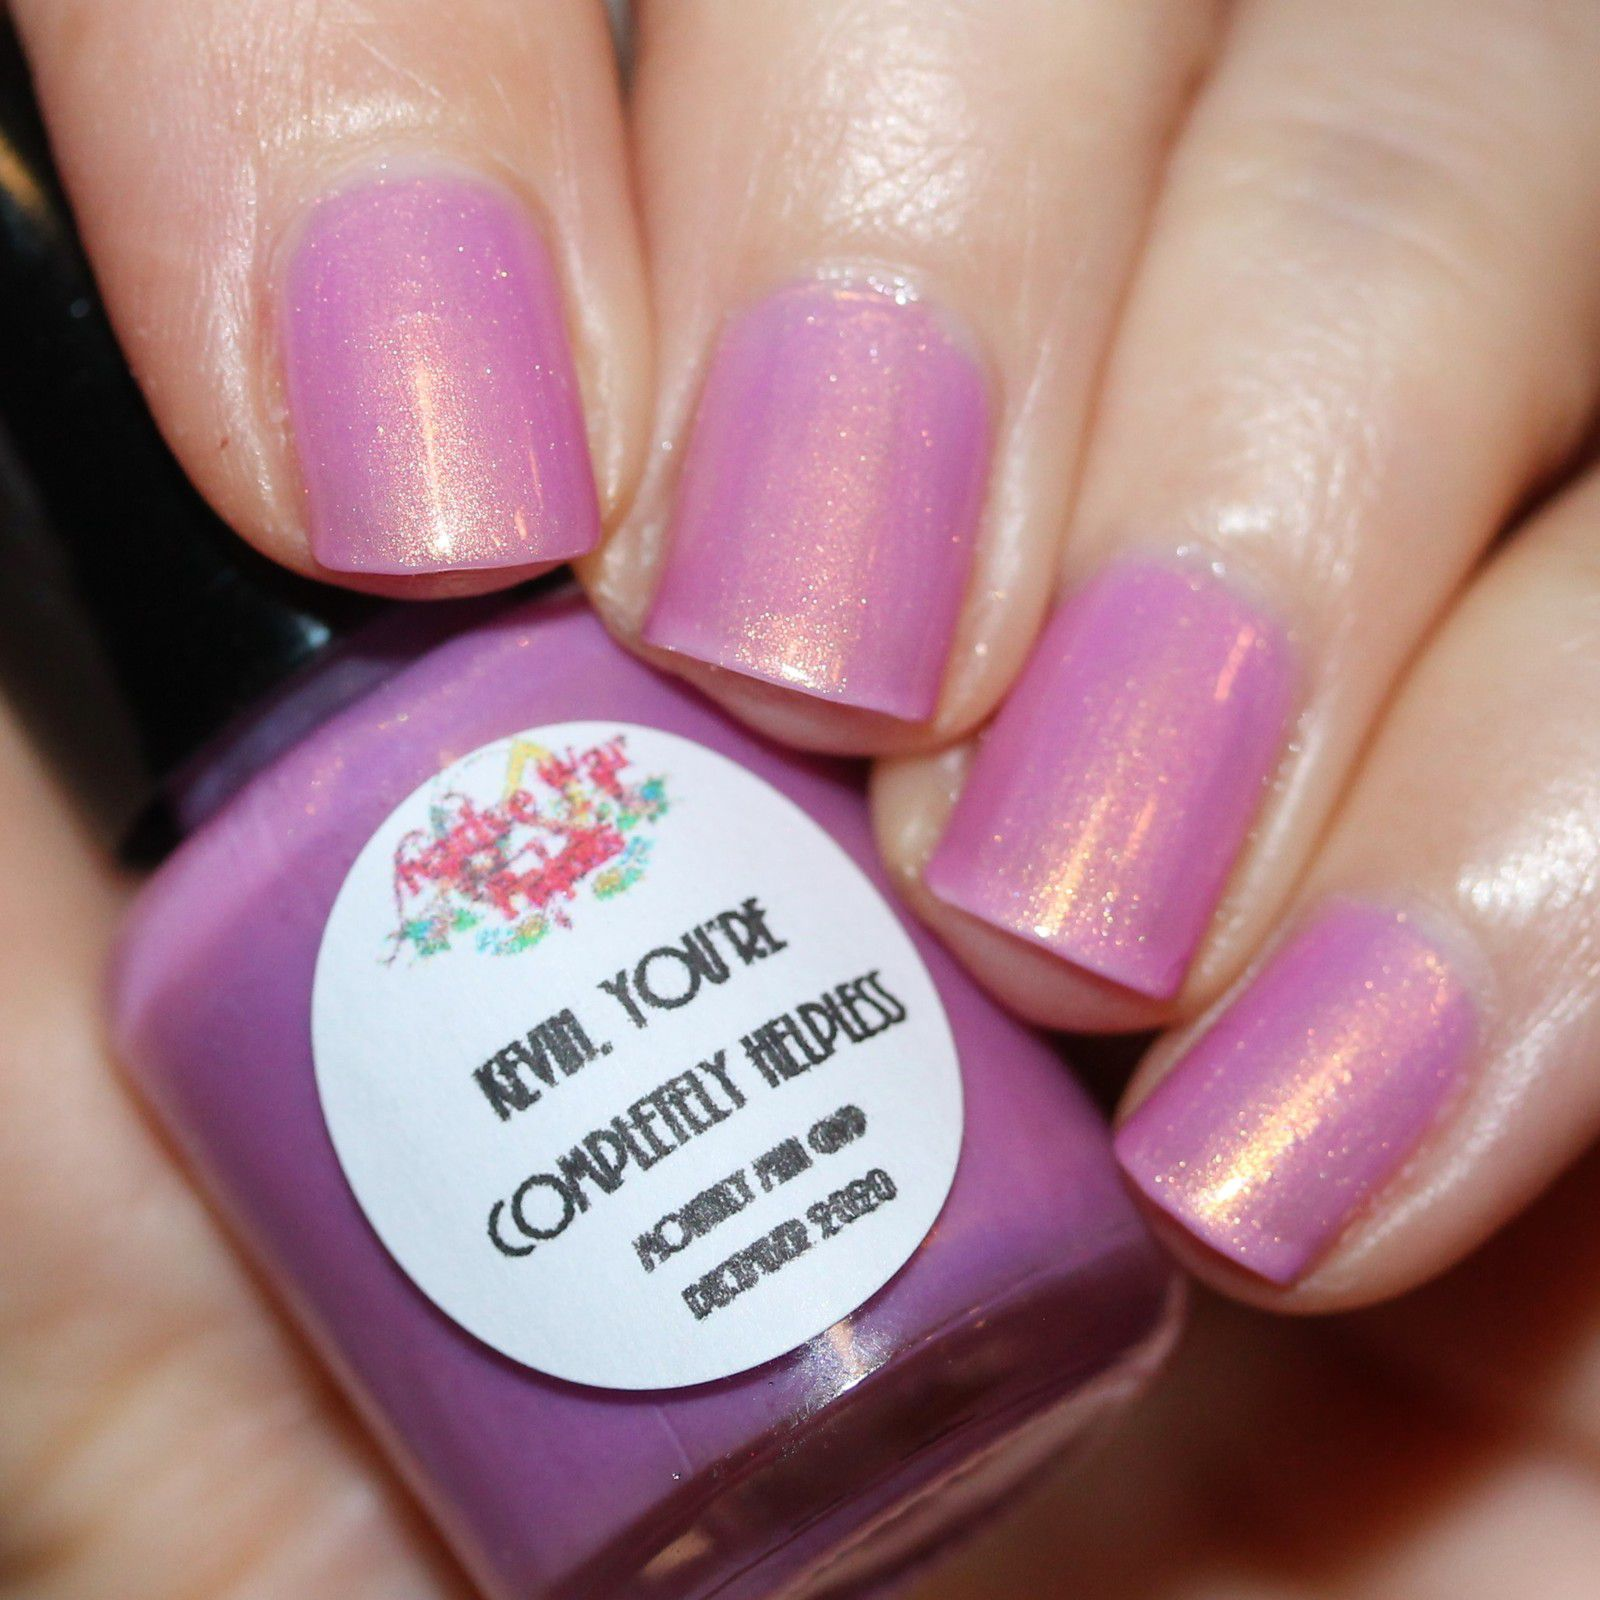 Essie Protein Base Coat / Native War paints Kevin, You're Completely Helpless / Sally Hansen Miracle Gel Top Coat